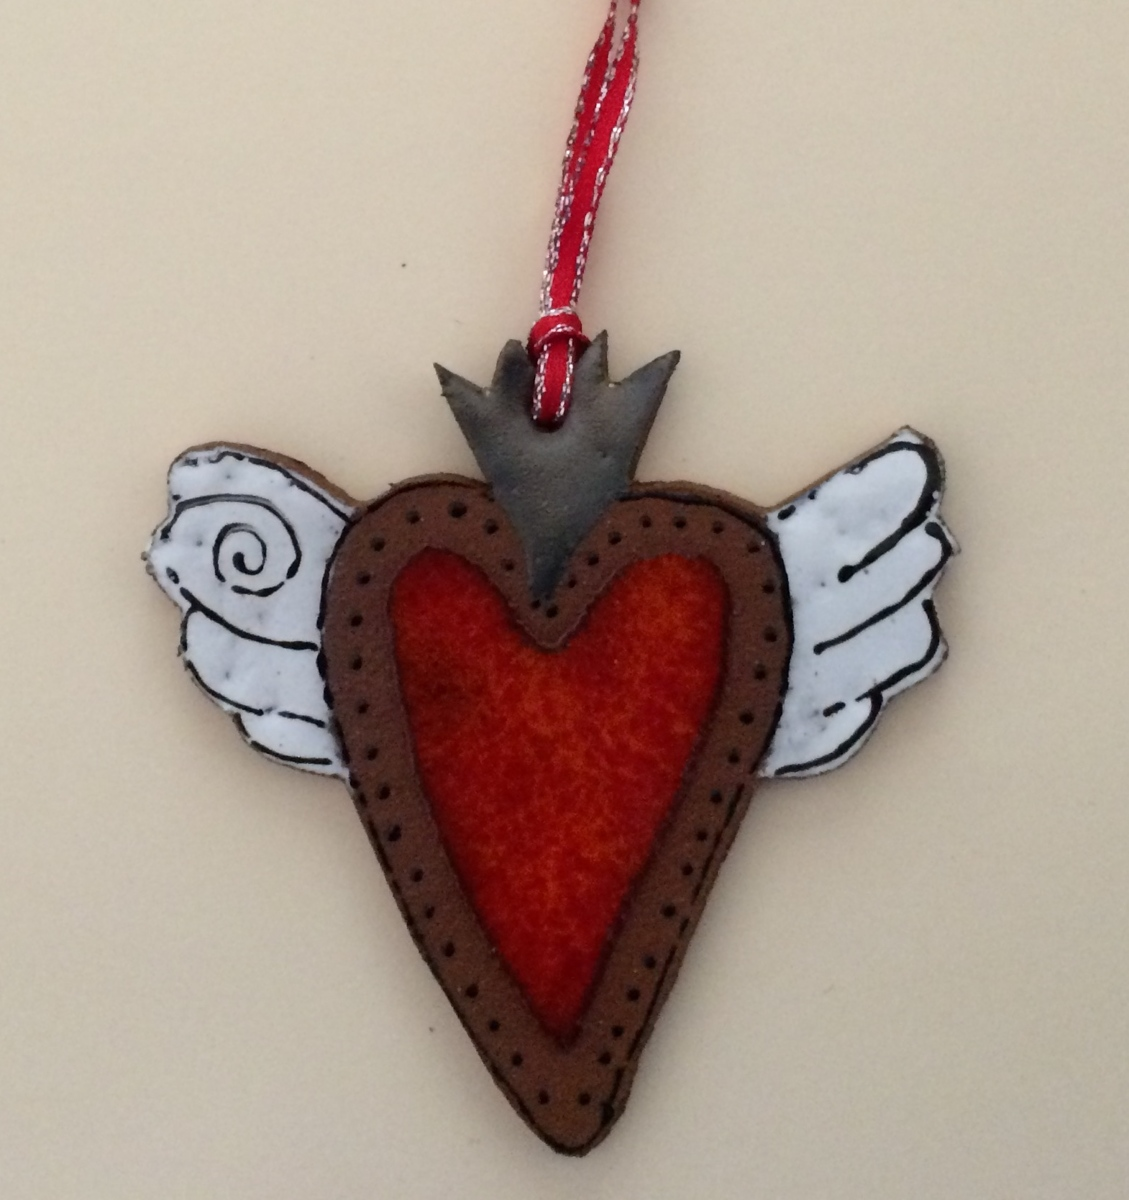 Winged Heart Ornament (large view)